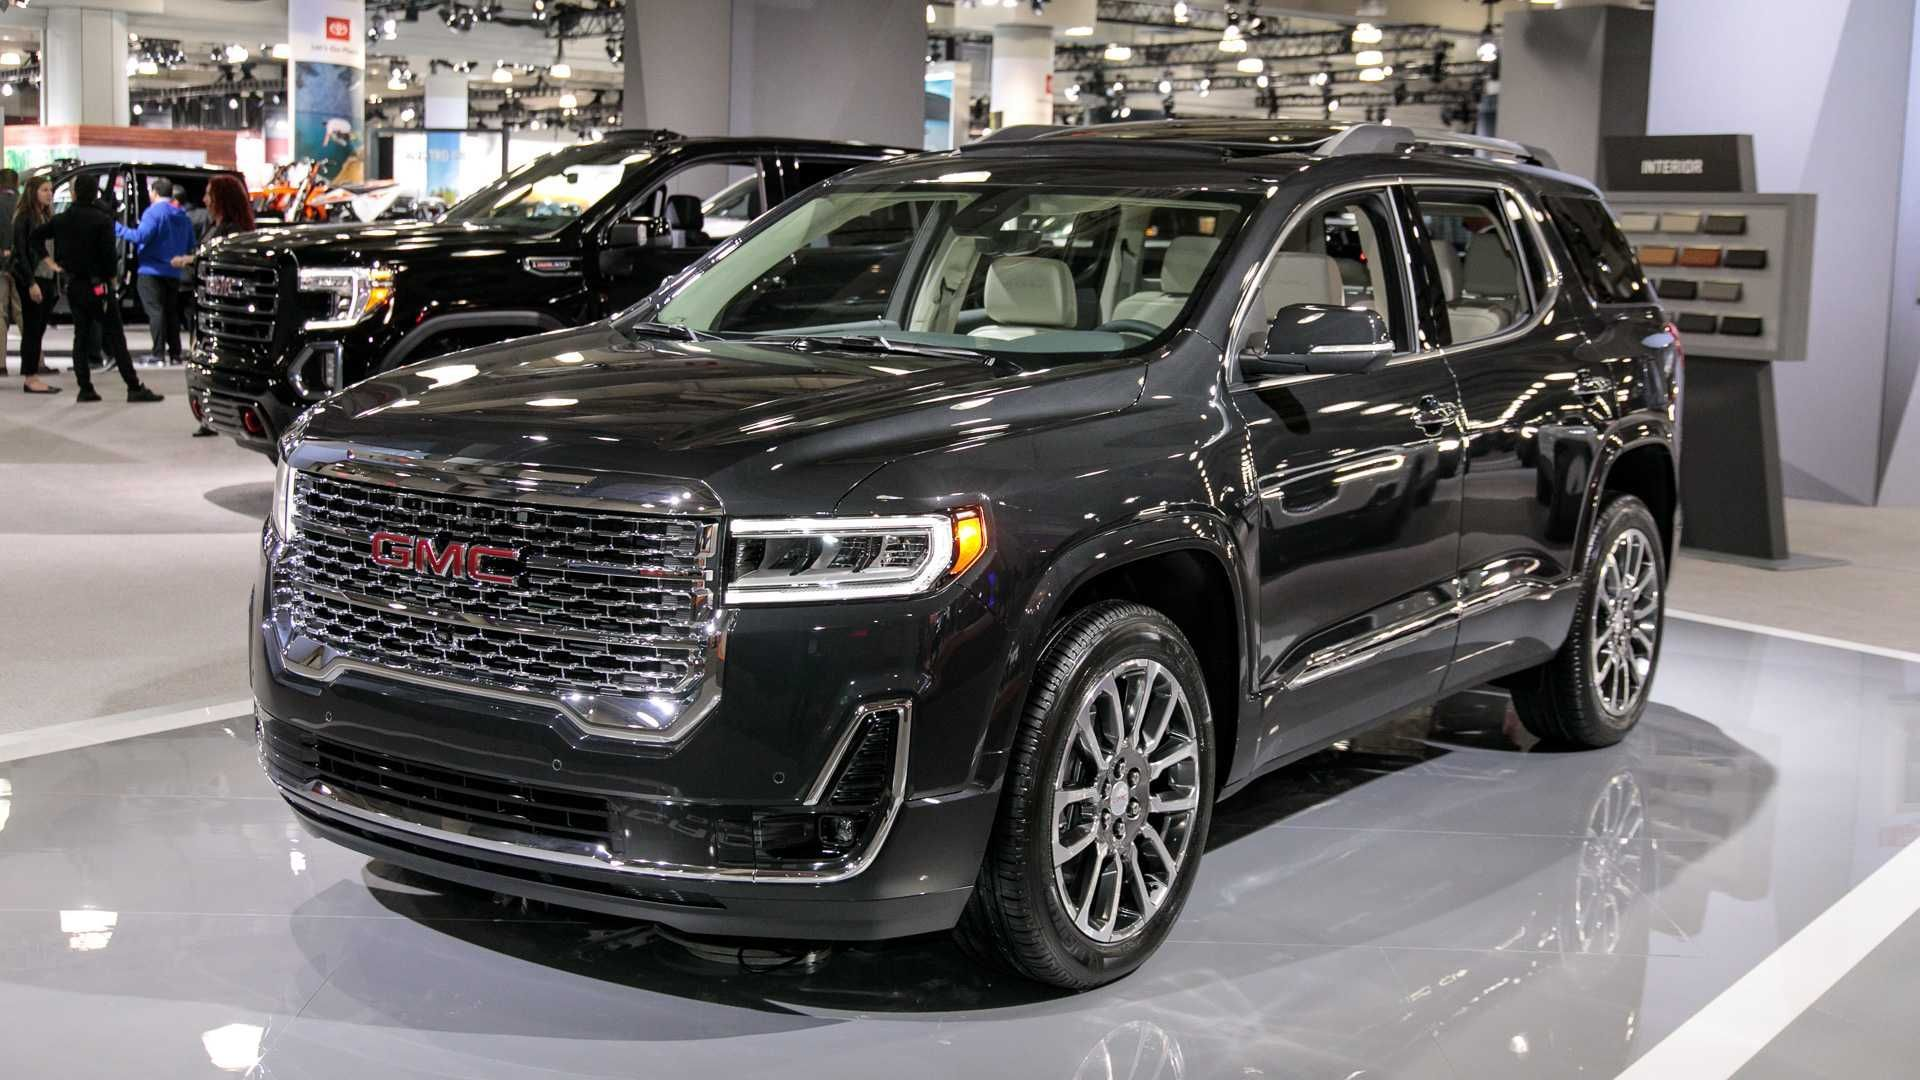 Gmc Acadia 2021 Vs 2019 Research In 2020 Suv Acadia Denali Gmc